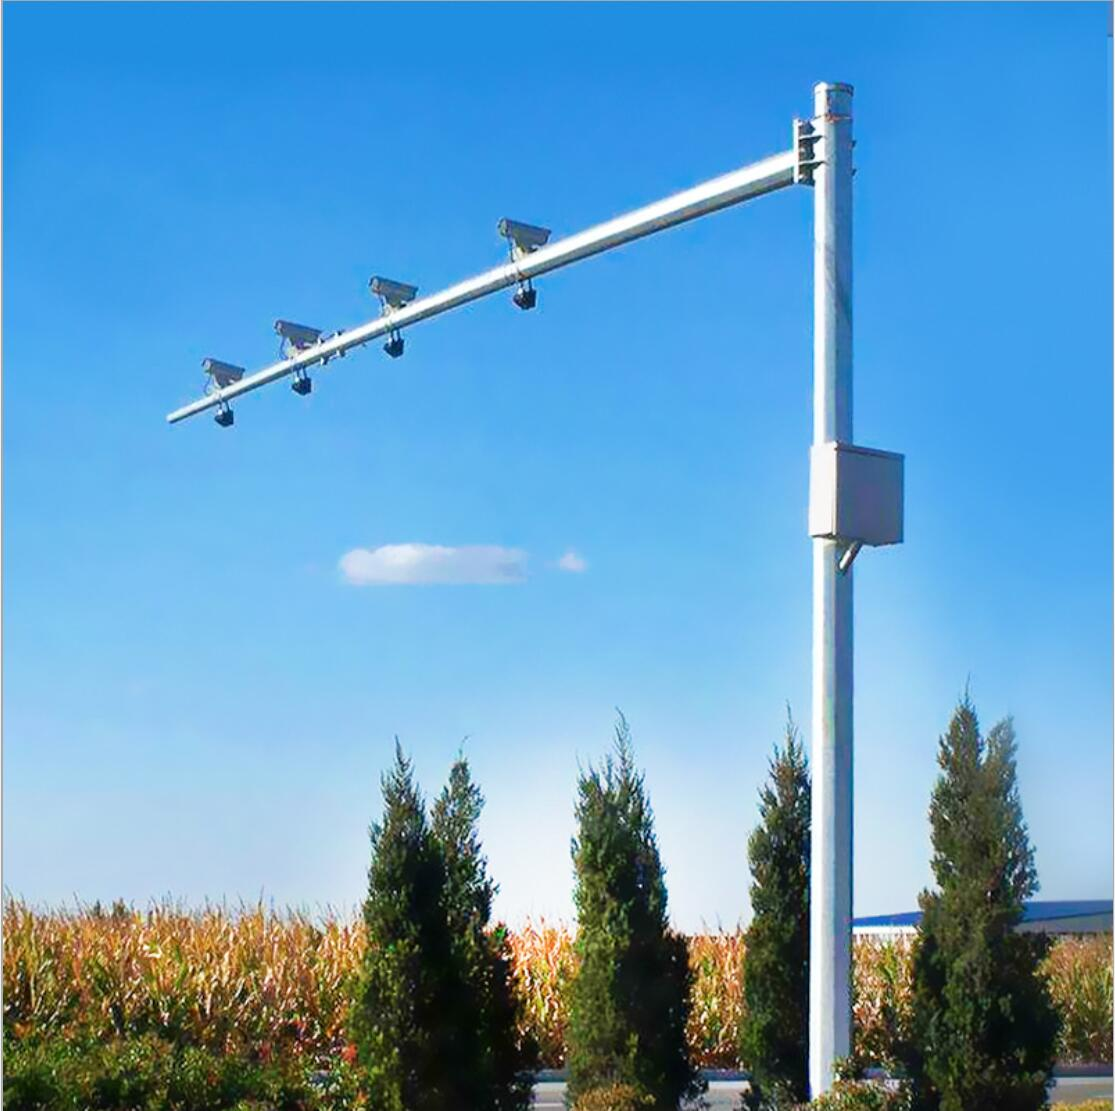 Octagonal Hot dip galvanized Traffic light post and column mounted on intersection